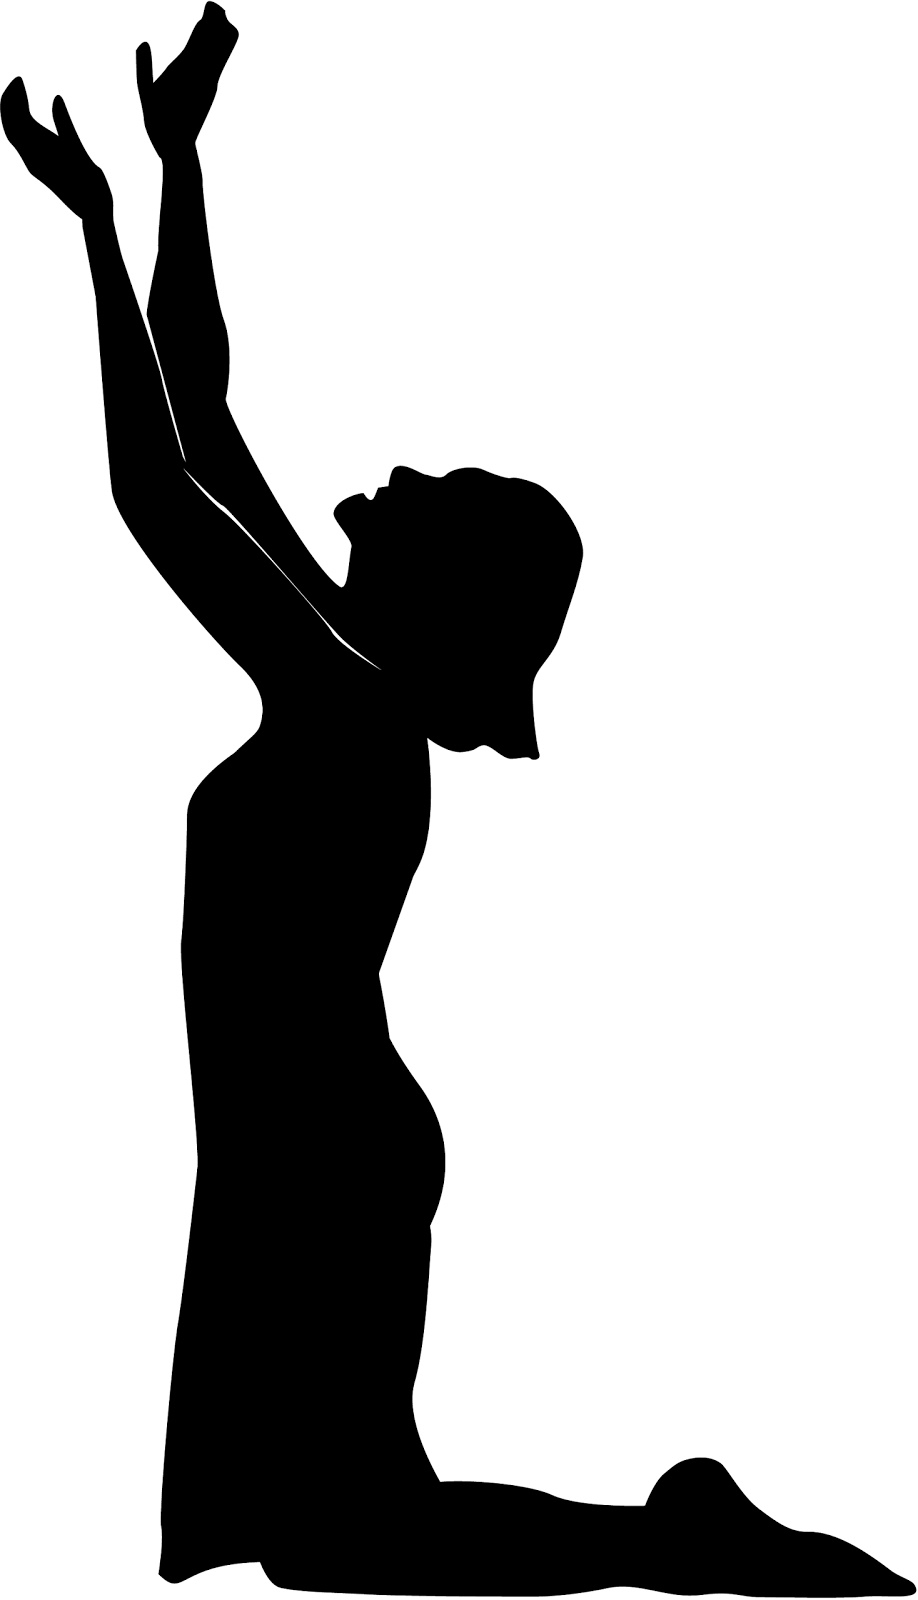 Woman Praying Clipart Praying Woman Silhouette Clip